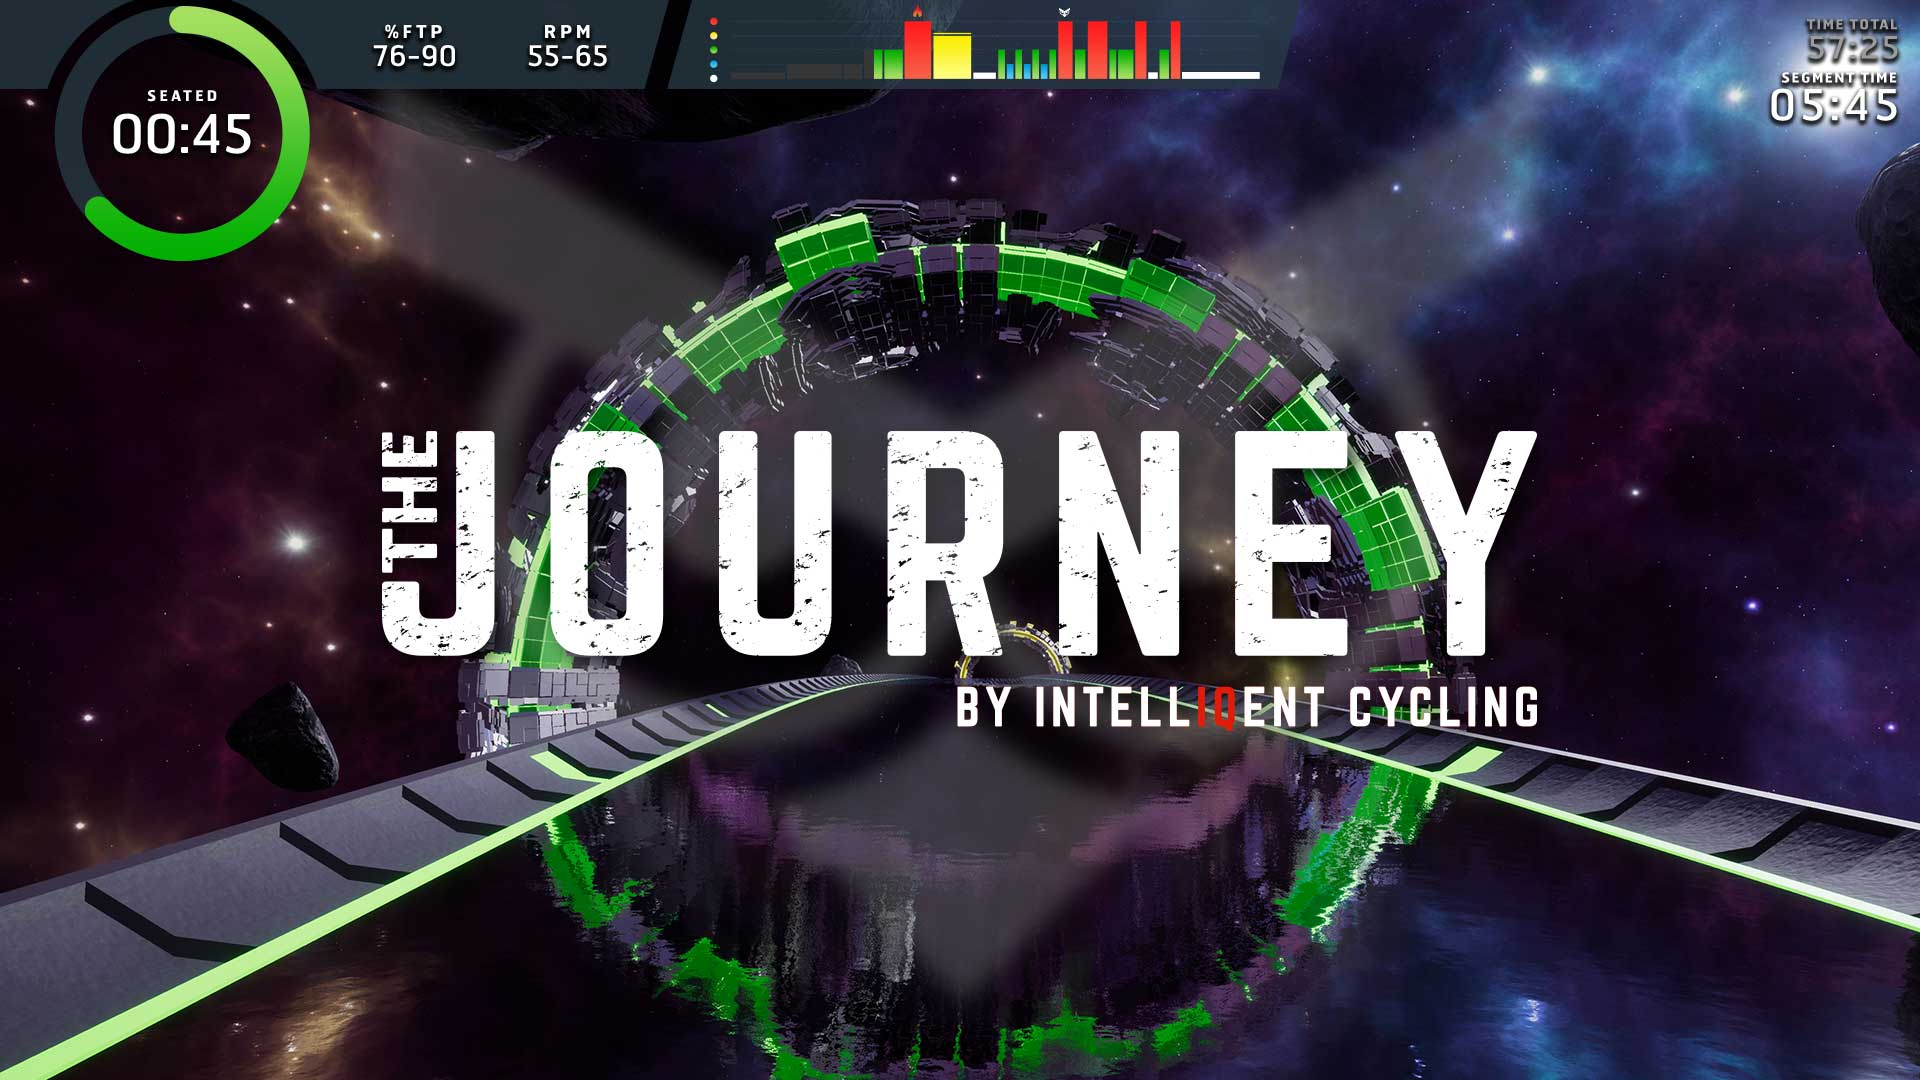 Intelligent Cycling powered by Wexer: A new, influencer-led workout every time